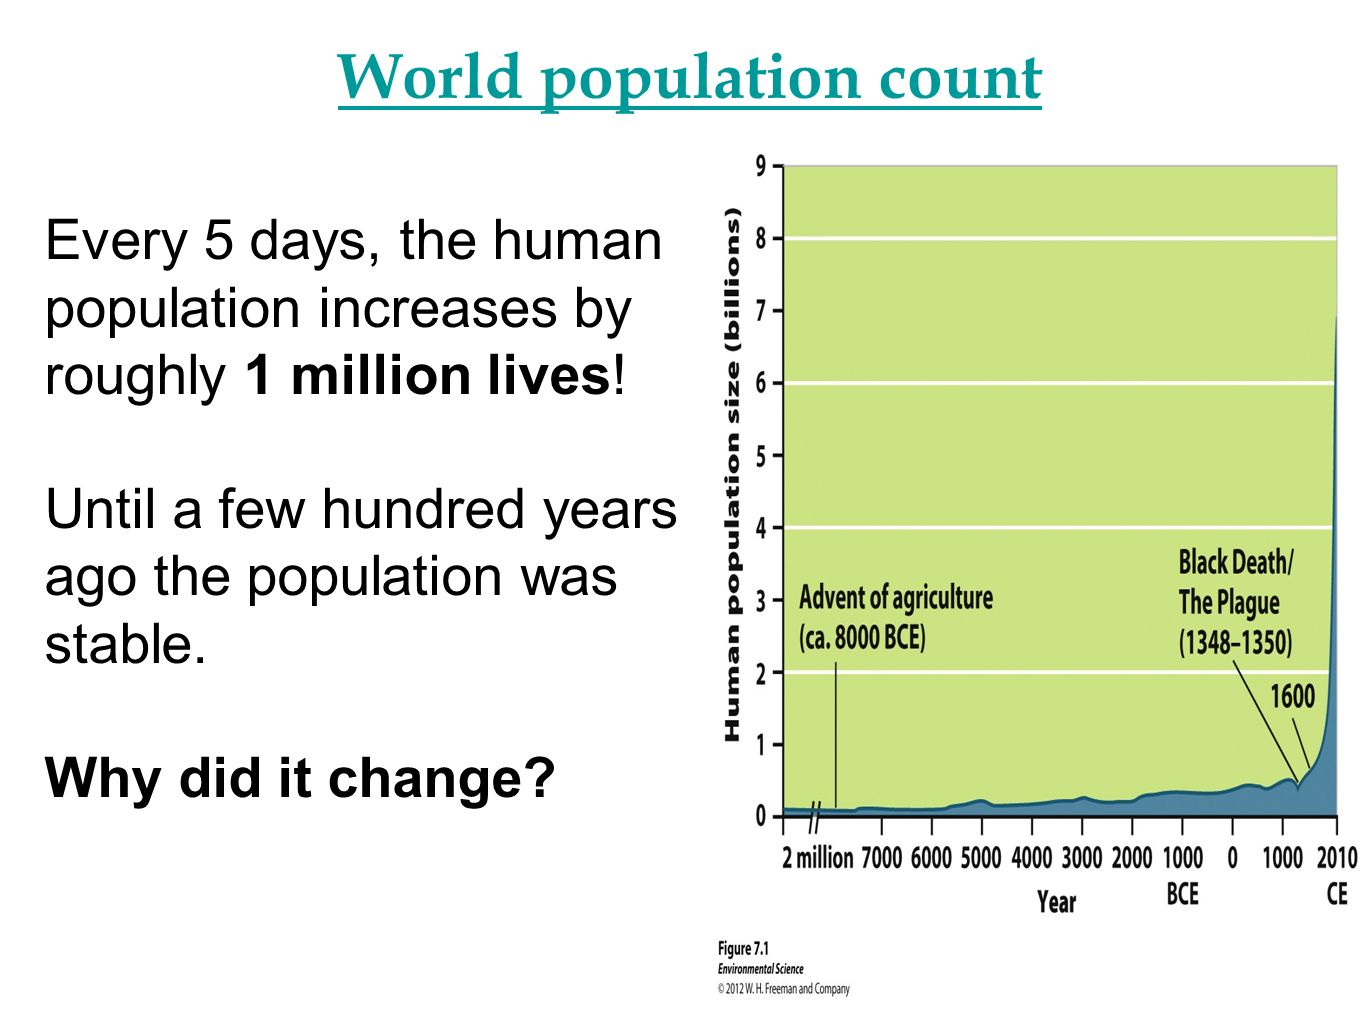 an analysis of the issue of human population and population growth Between 60,000 and 40,000 bce, the human population rose and fell, but  remained generally stable at around 600,000 individuals it then began to  increase.